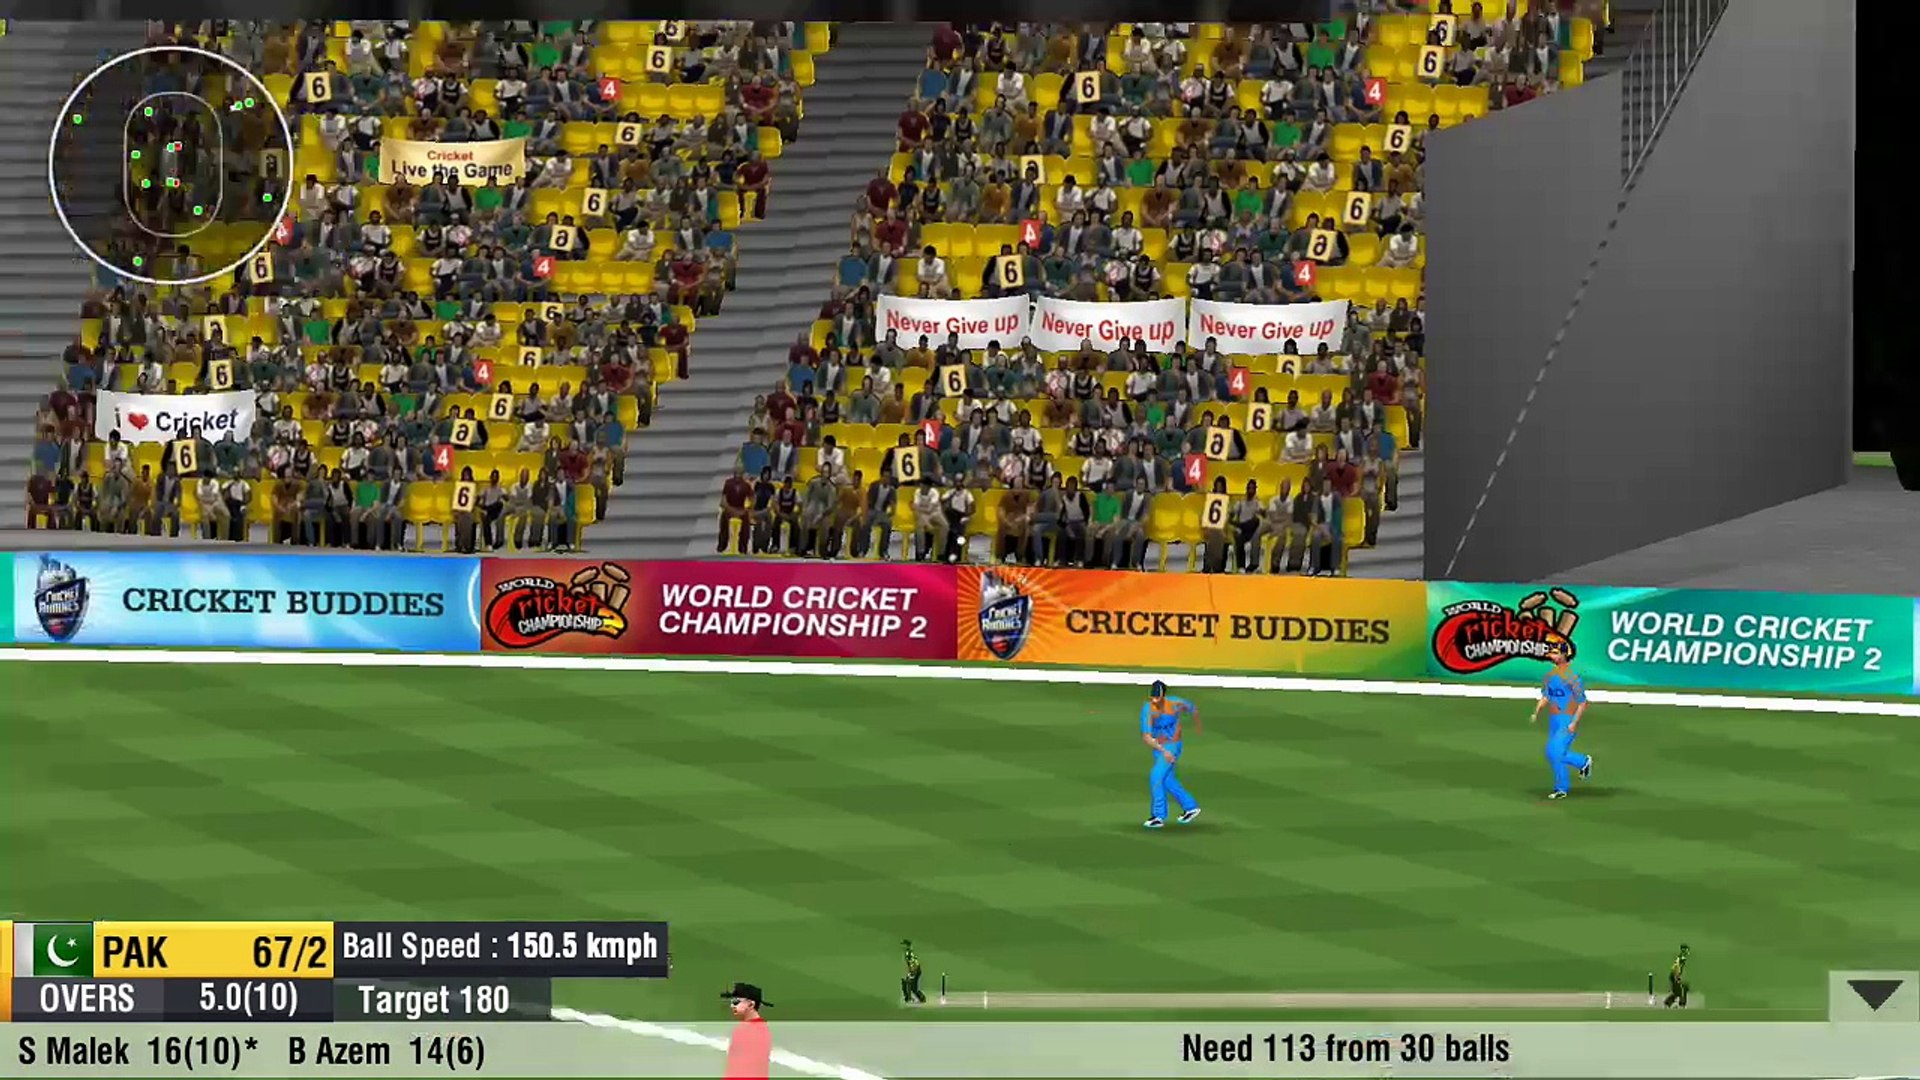 Another Cricket Game Video Screenshot